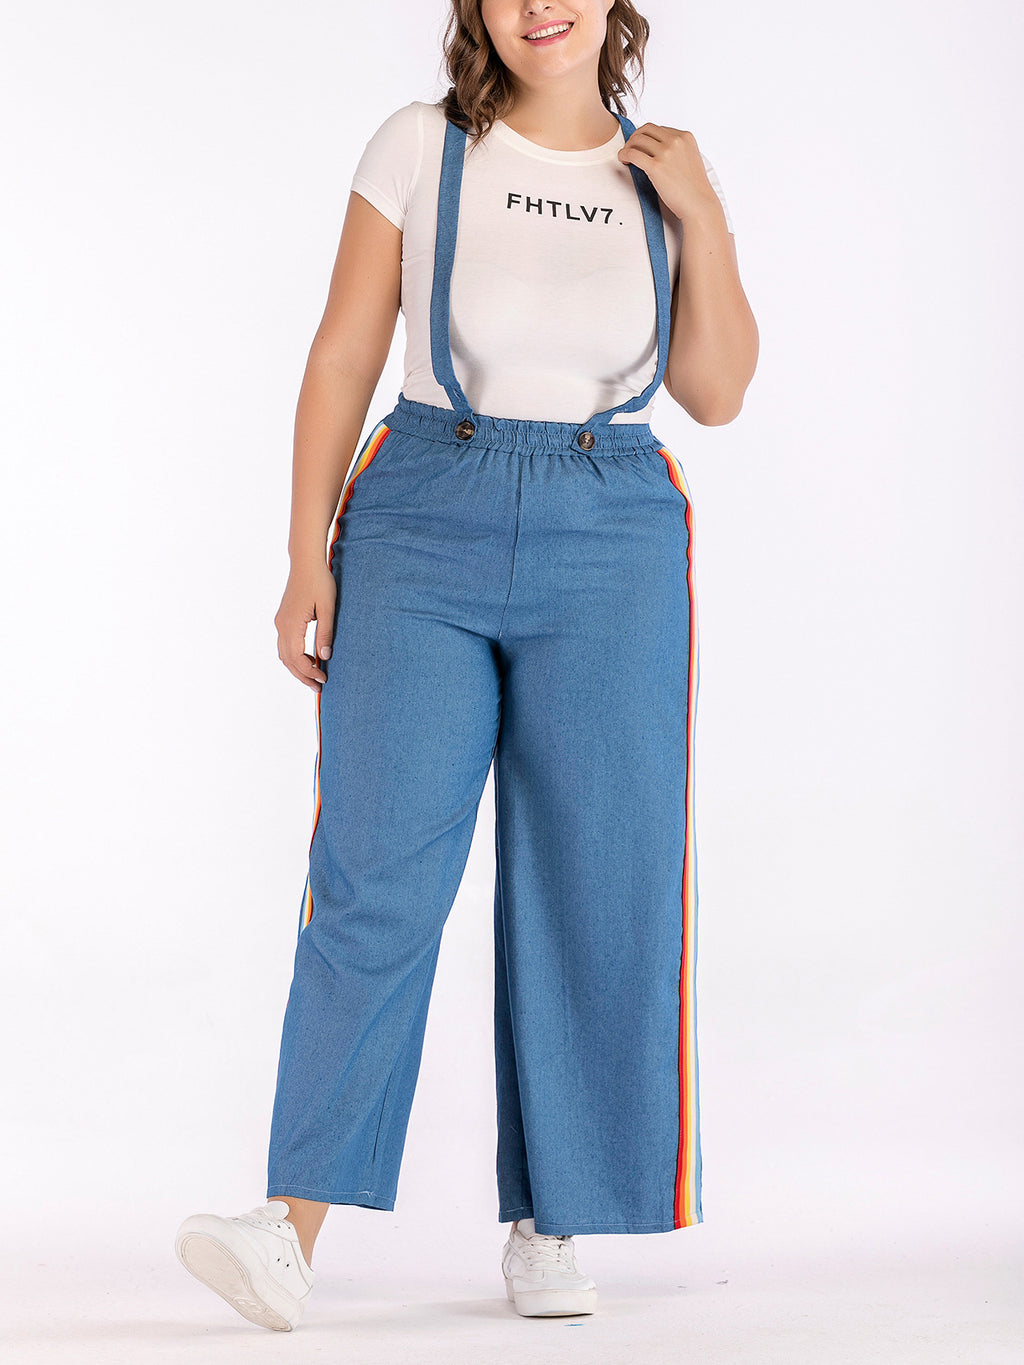 Large Size Casual Denim Overalls